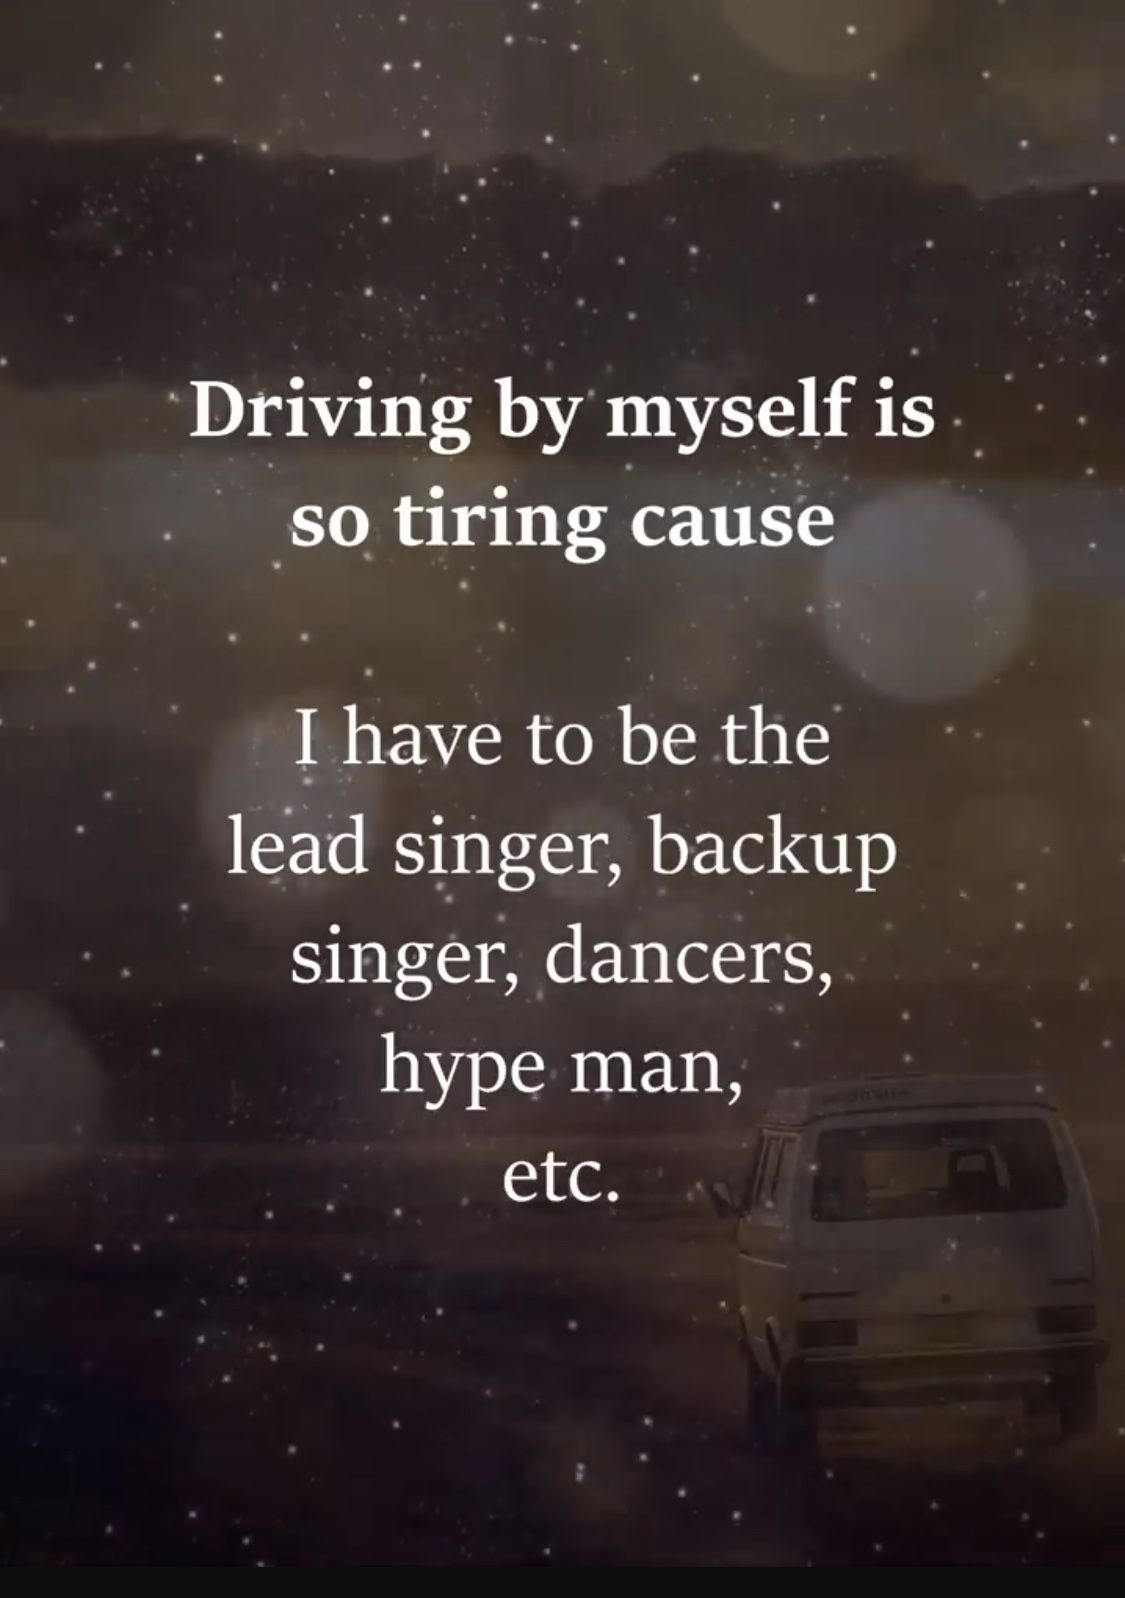 Pin By Maestramarina On Funny Memes Inspirational Quotes Motivation Funny Inspirational Quotes Singer Quote